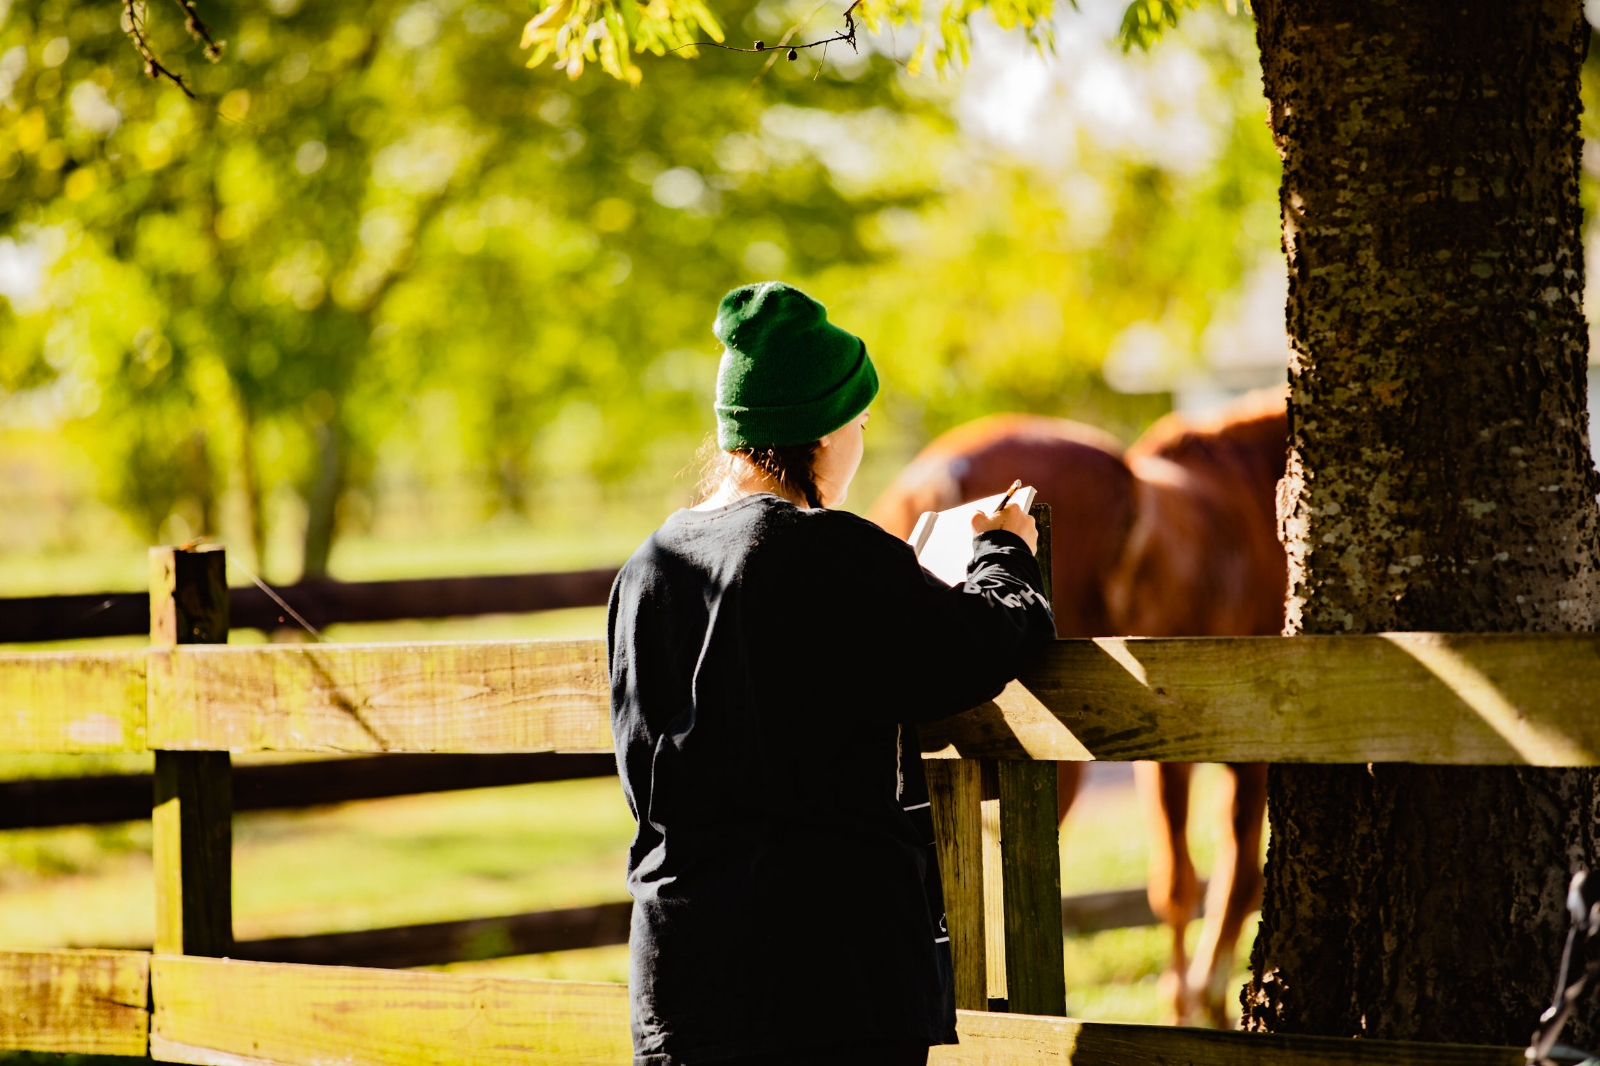 Ali caught me sketching our horse friend -  check out the rest of her photos !